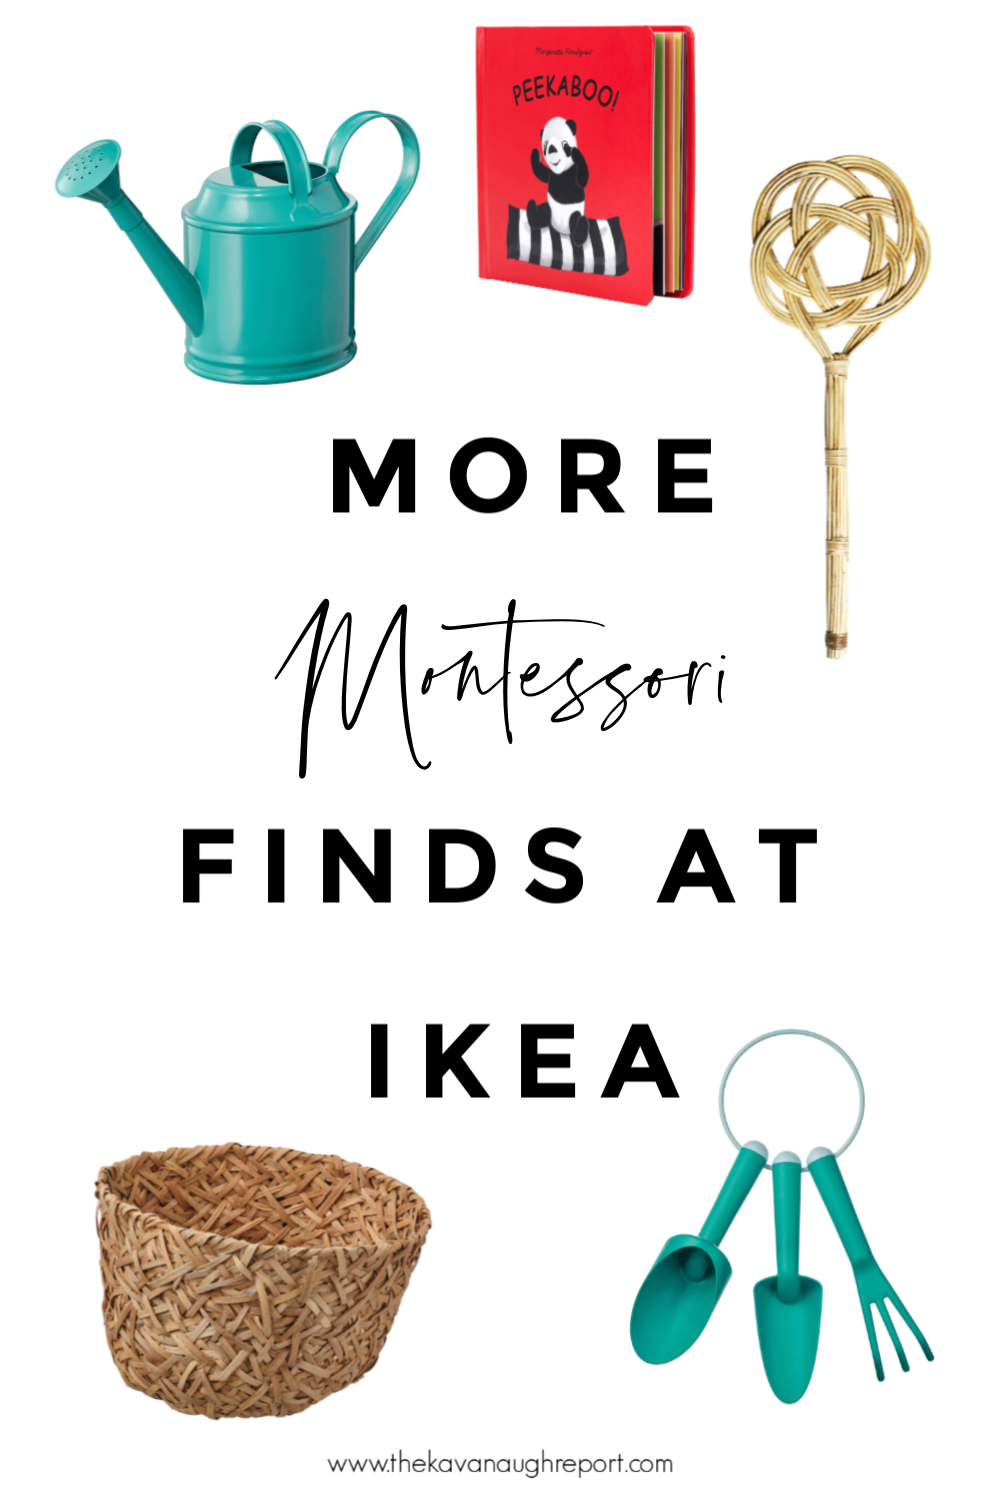 Montessori friendly finds for children and homes from IKEA.